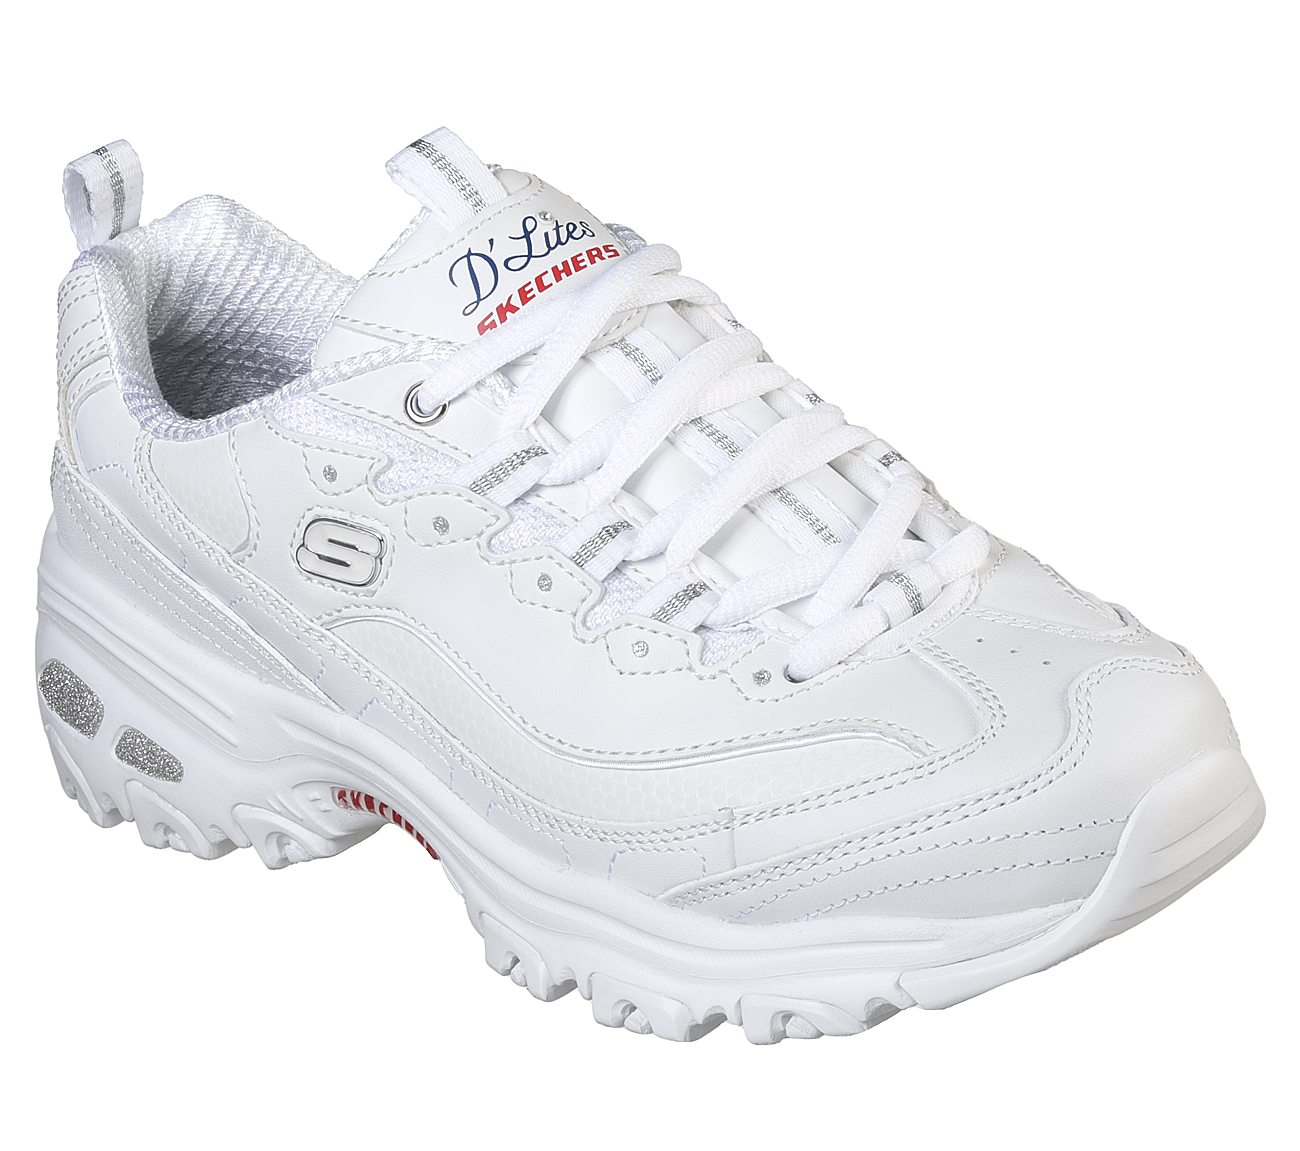 631c719ba93a Buy SKECHERS D'lites - Fresh Start D'Lites Shoes only $100.00